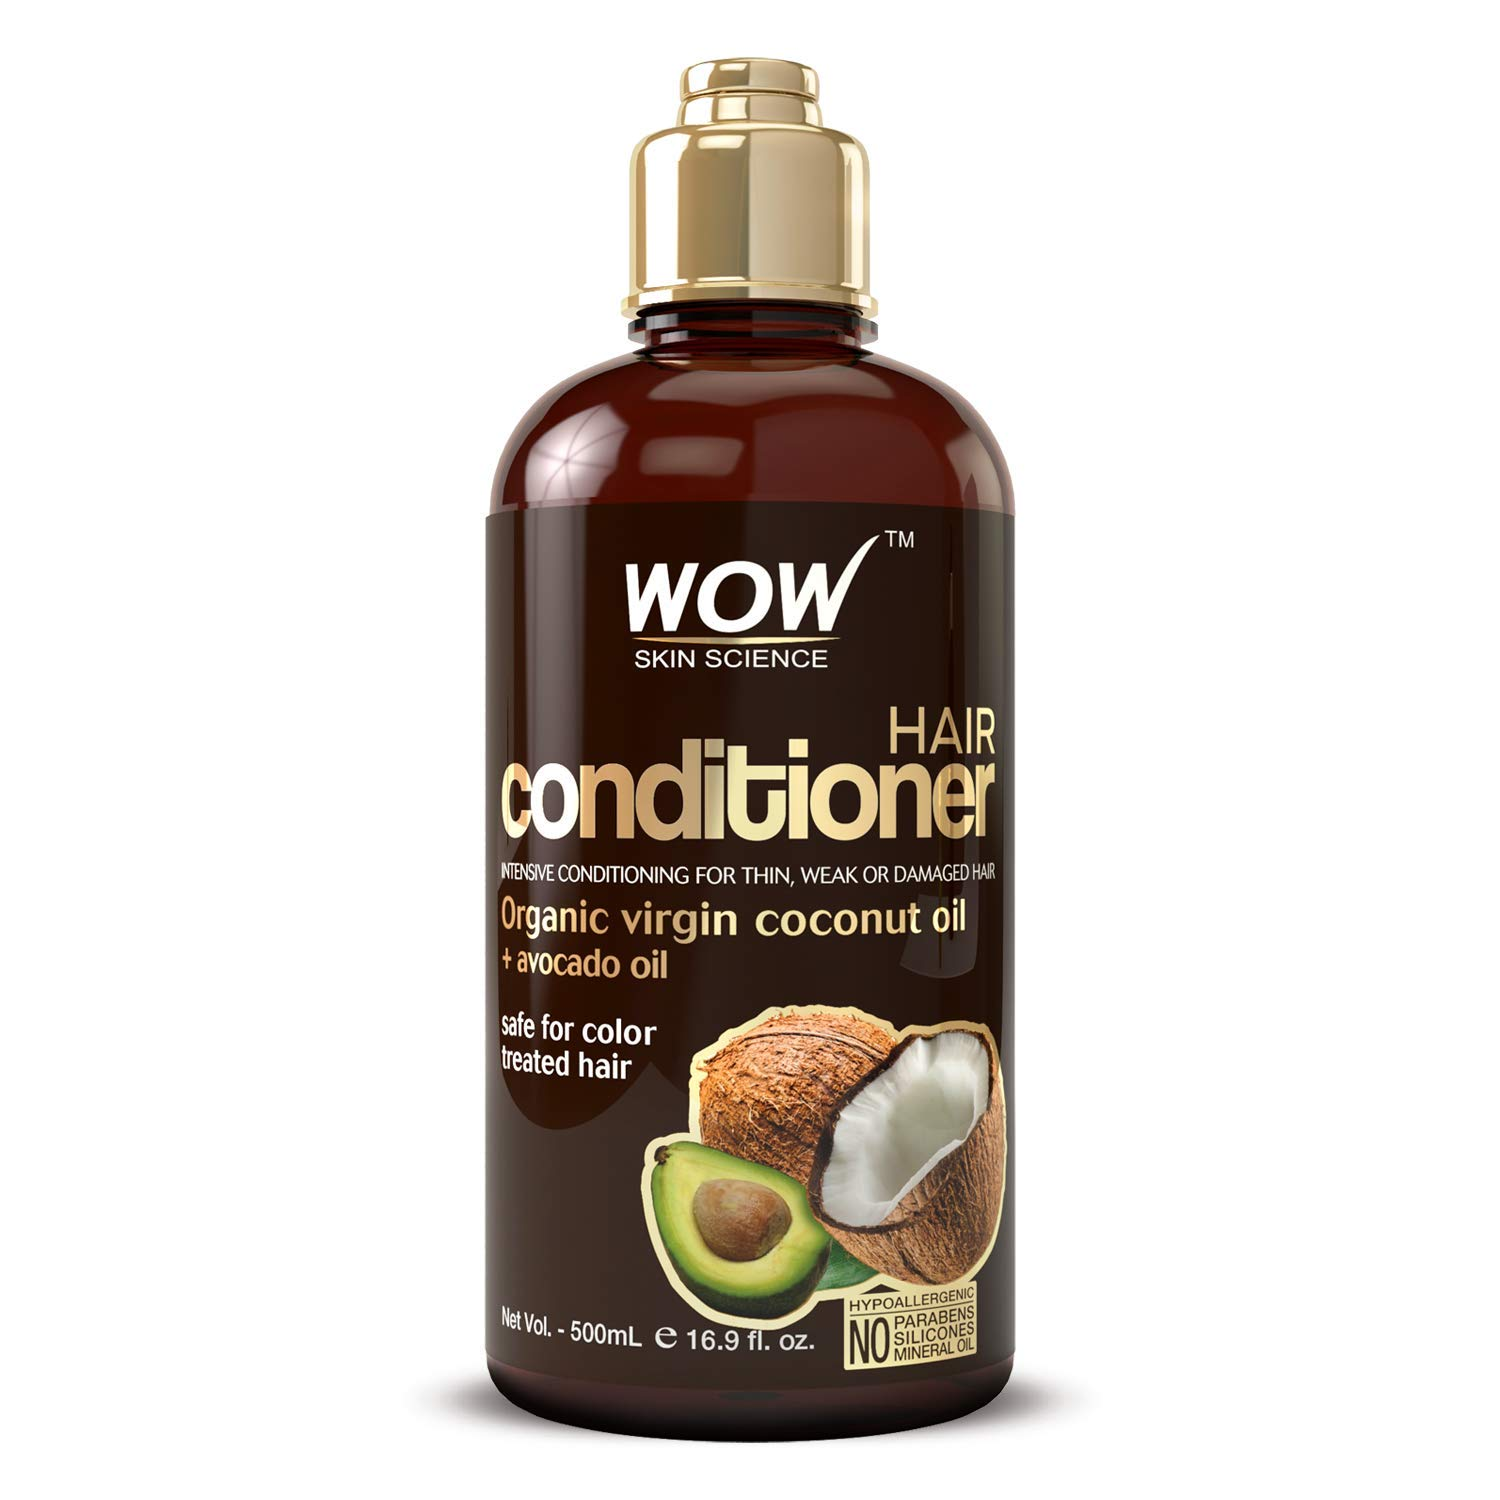 WOW Hair Conditioner - Coconut & Avocado Oil - Restore Dry, Damaged Hair - Increase Gloss - Reduce Split Ends, Frizz - Sulfate, Silicones, Paraben Free - All Hair Types, Adults & Children - 500 mL by BUYWOW